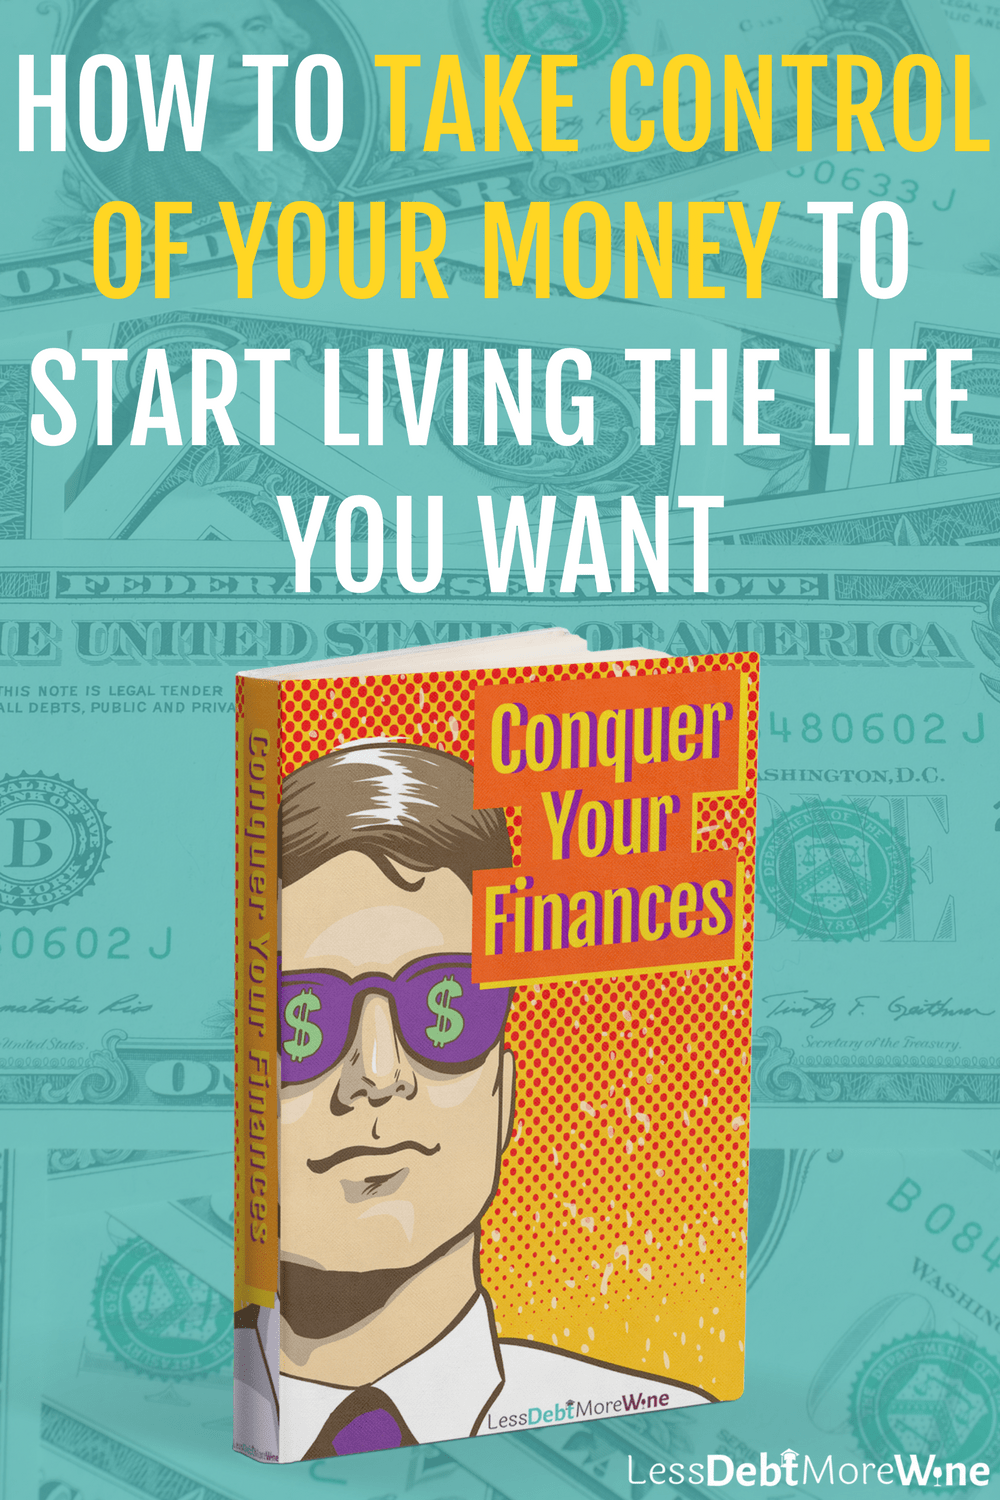 The Conquer Your Finances ebook will help you to better understand and manage your money so you can hit that goal of paying off debt or taking a dream vacation faster! pay off debt | personal finance tips | millennial money tips